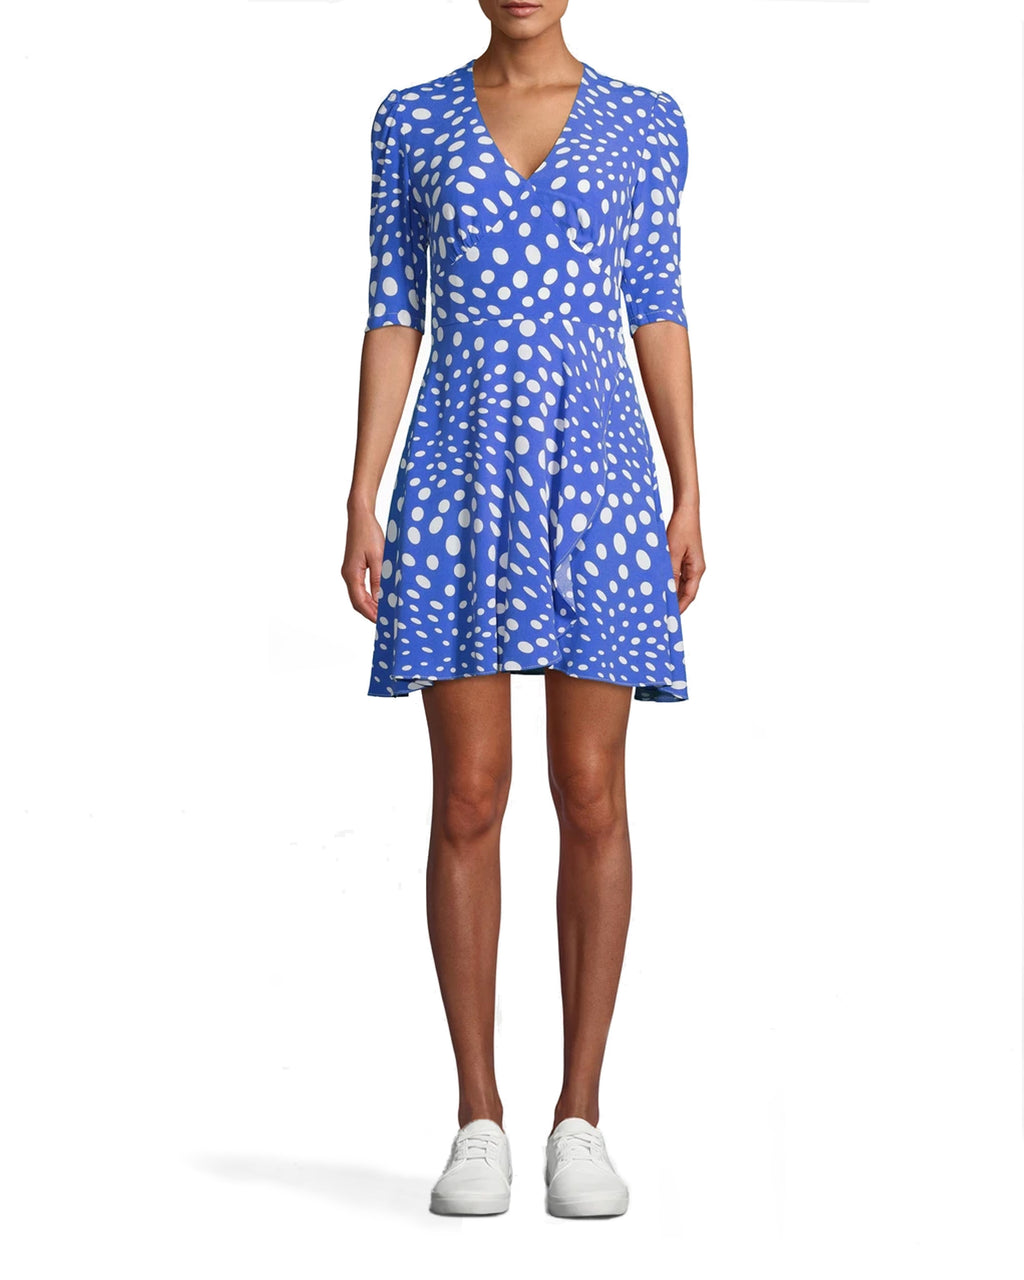 AP10049 - PEBBLE CREPE V-NECK MINI FAUX WRAP DRESS - dresses - short - SIMPLE DOESN�T HAVE TO MEAN BORING. THIS V-NECK FAUX WRAP DRESS CAN BE EASILY DRESSED UP OR DOWN. PAIR WITH YOUR FAVORITE SHOES. BACK ZIPPER FOR CLOSURE.